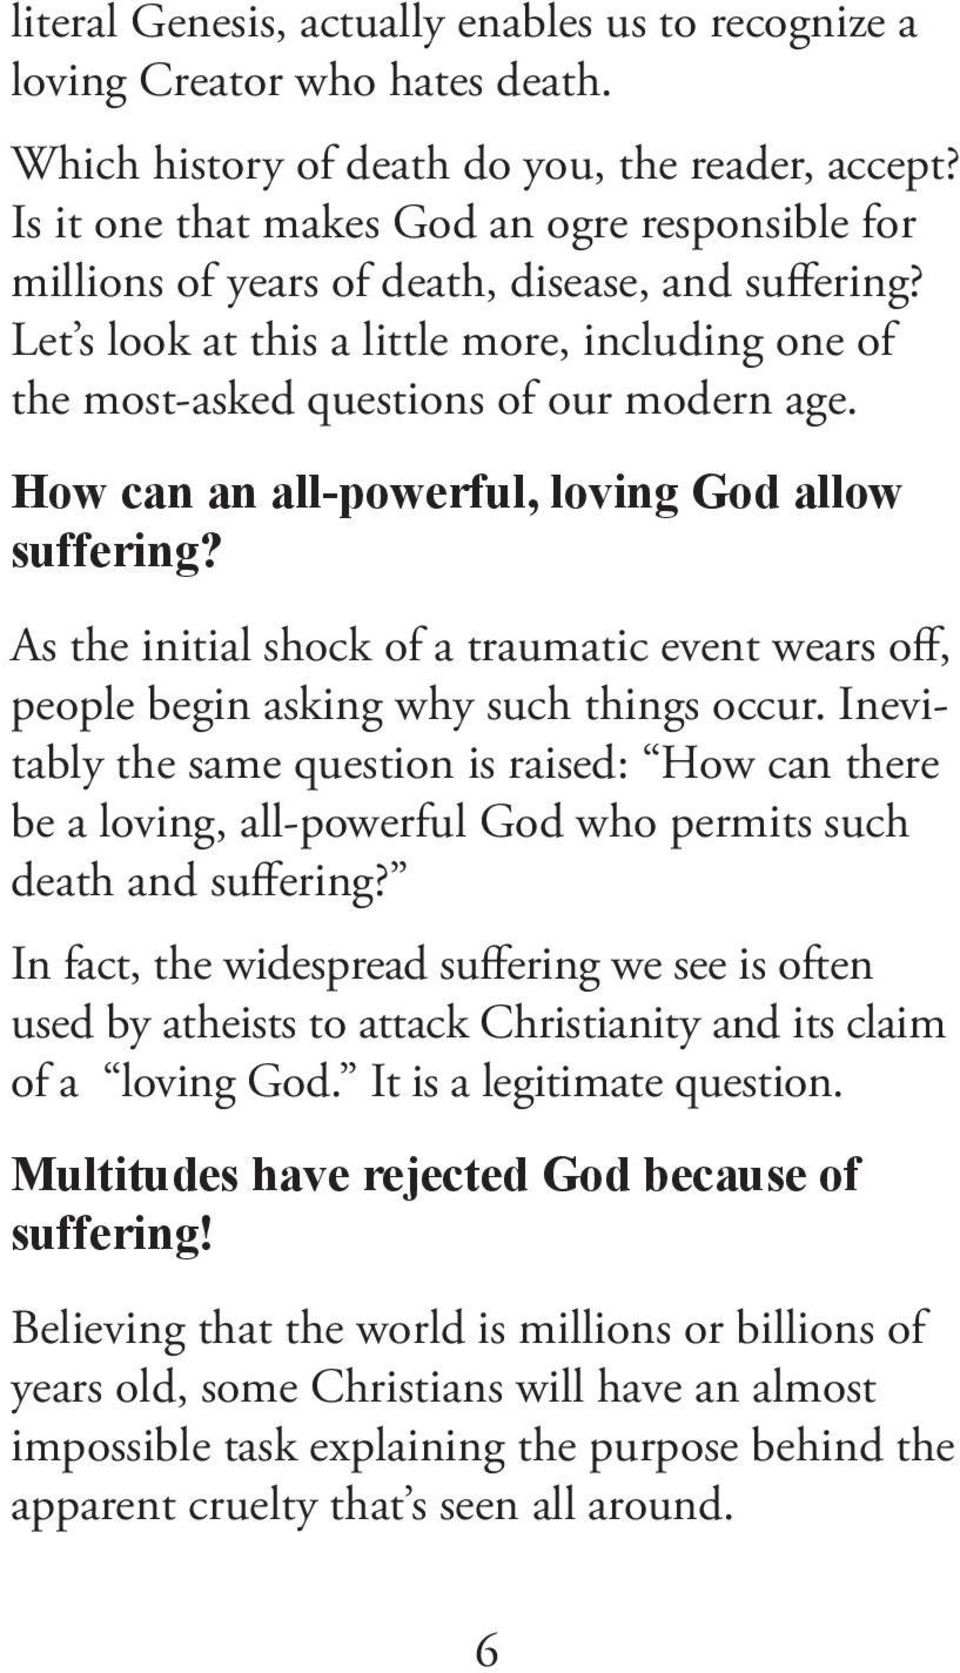 How can an all-powerful, loving God allow suffering? As the initial shock of a traumatic event wears off, people begin asking why such things occur.